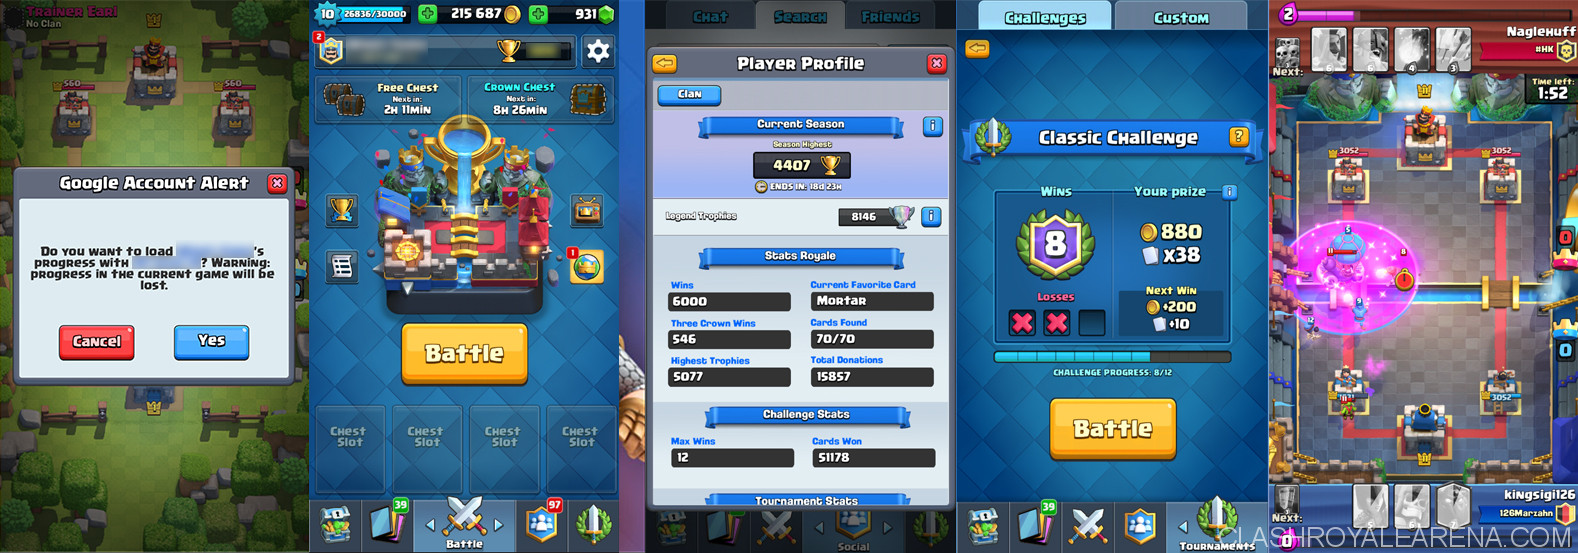 Clash Royale PC for Windows XP/7/8/10 | Clash Royale Arena